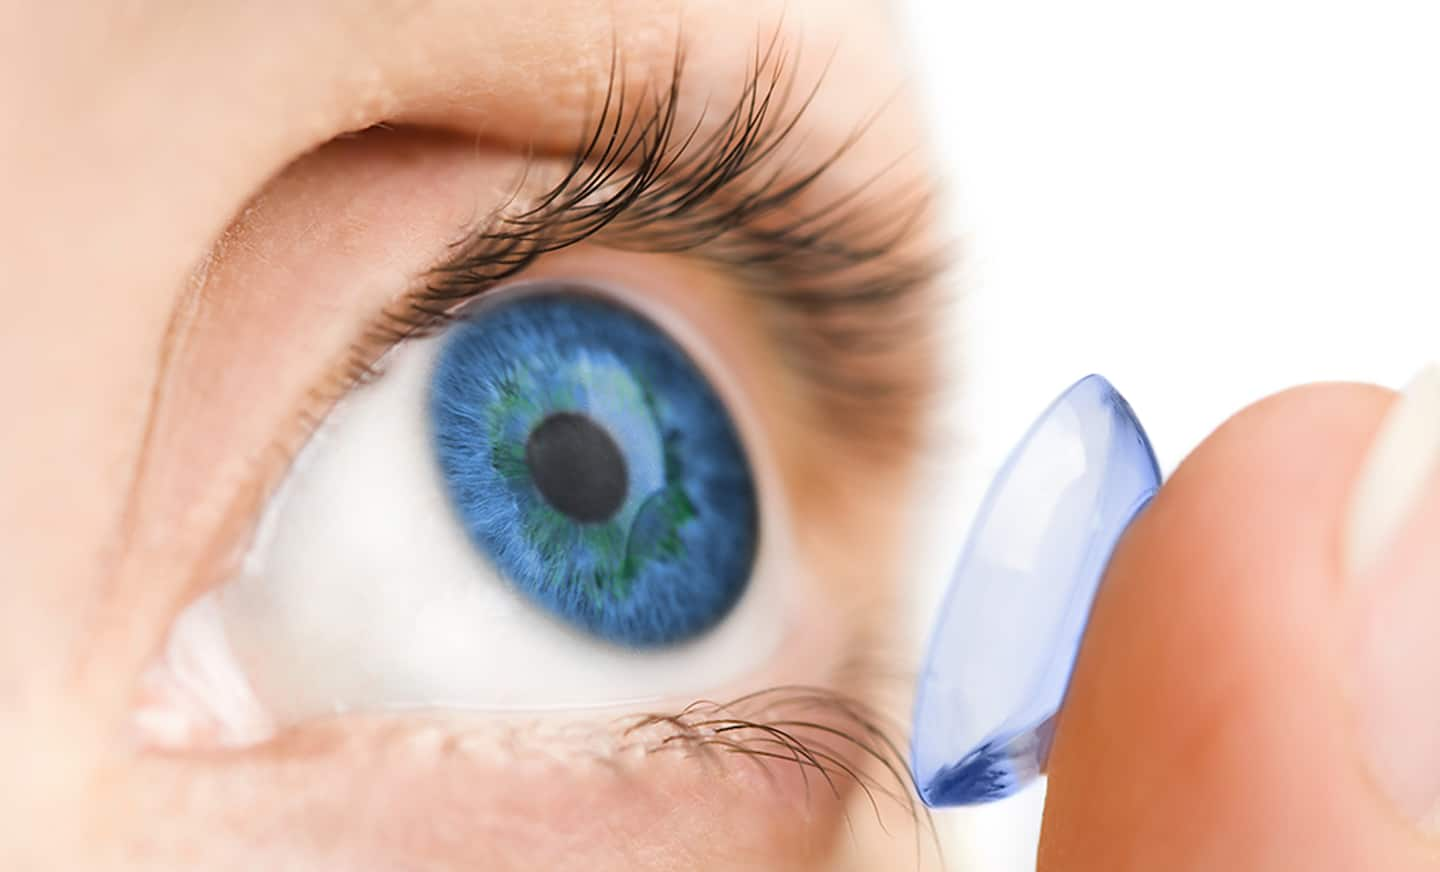 The Eye Practice are contact lens specialists.